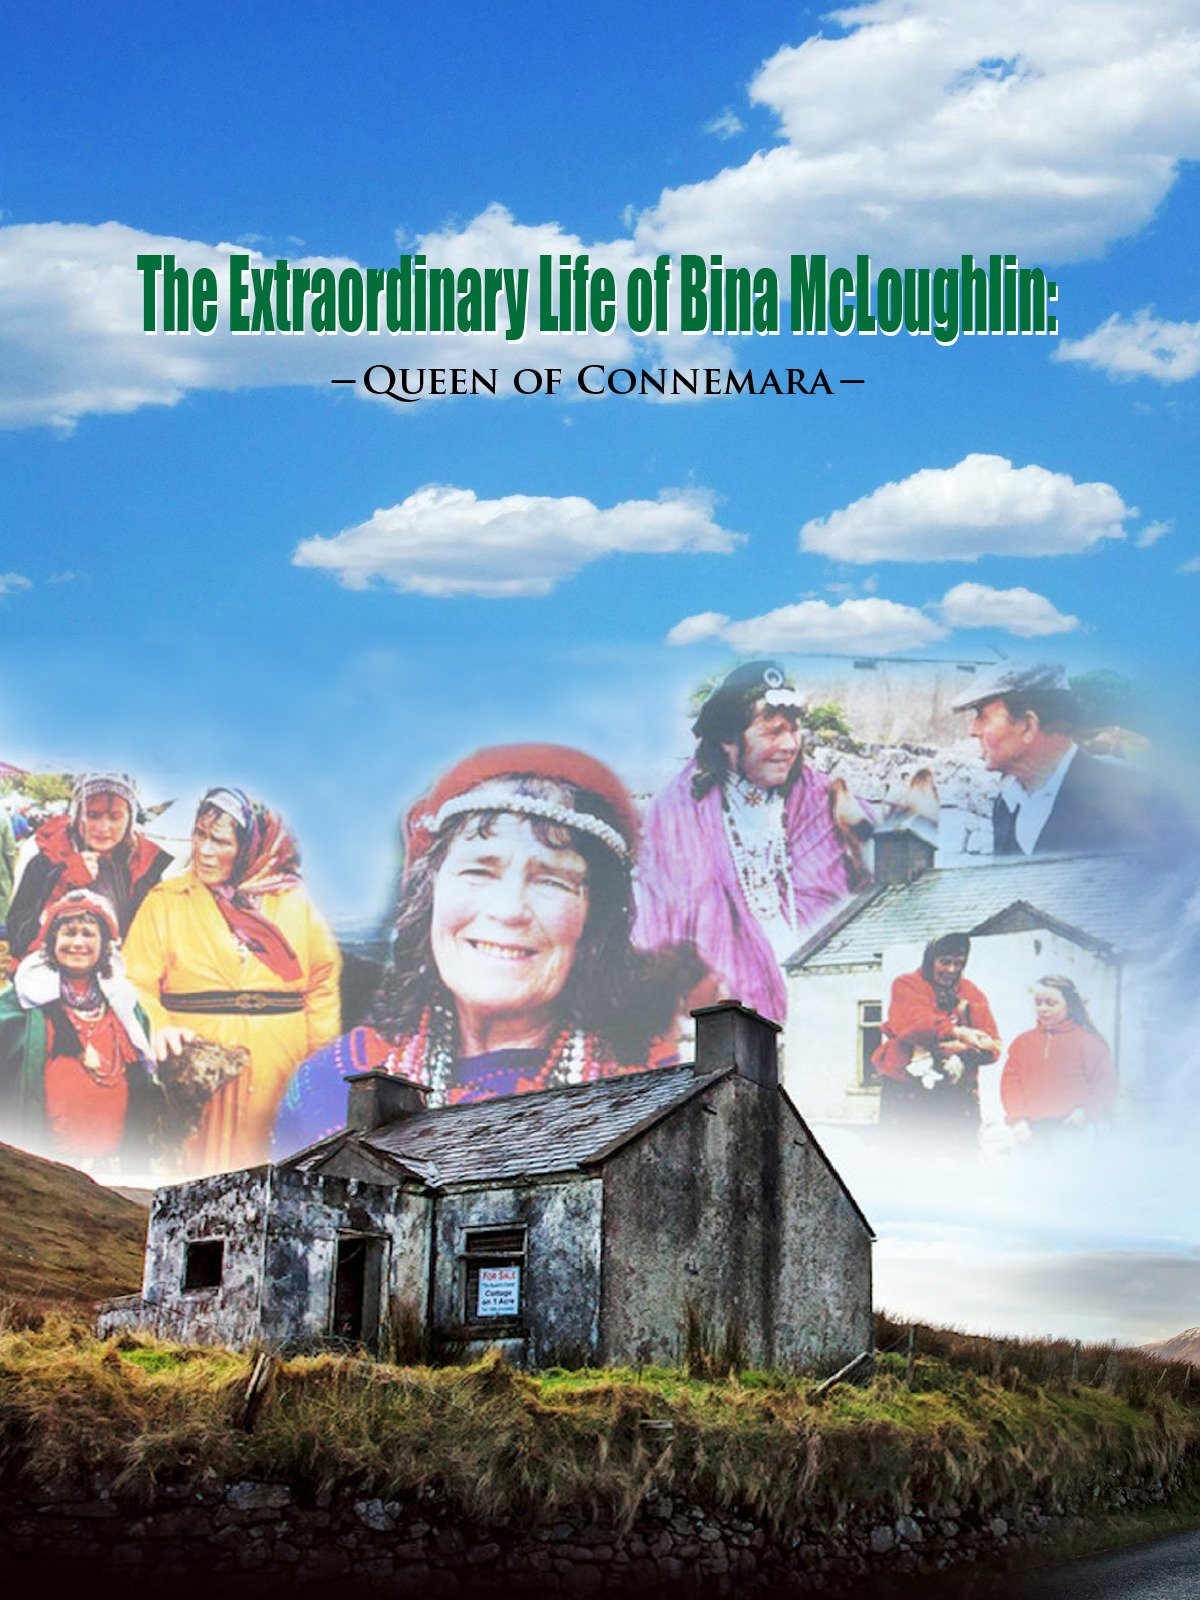 The Extraordinary Life of Bina McLoughlin: Queen of Connemara